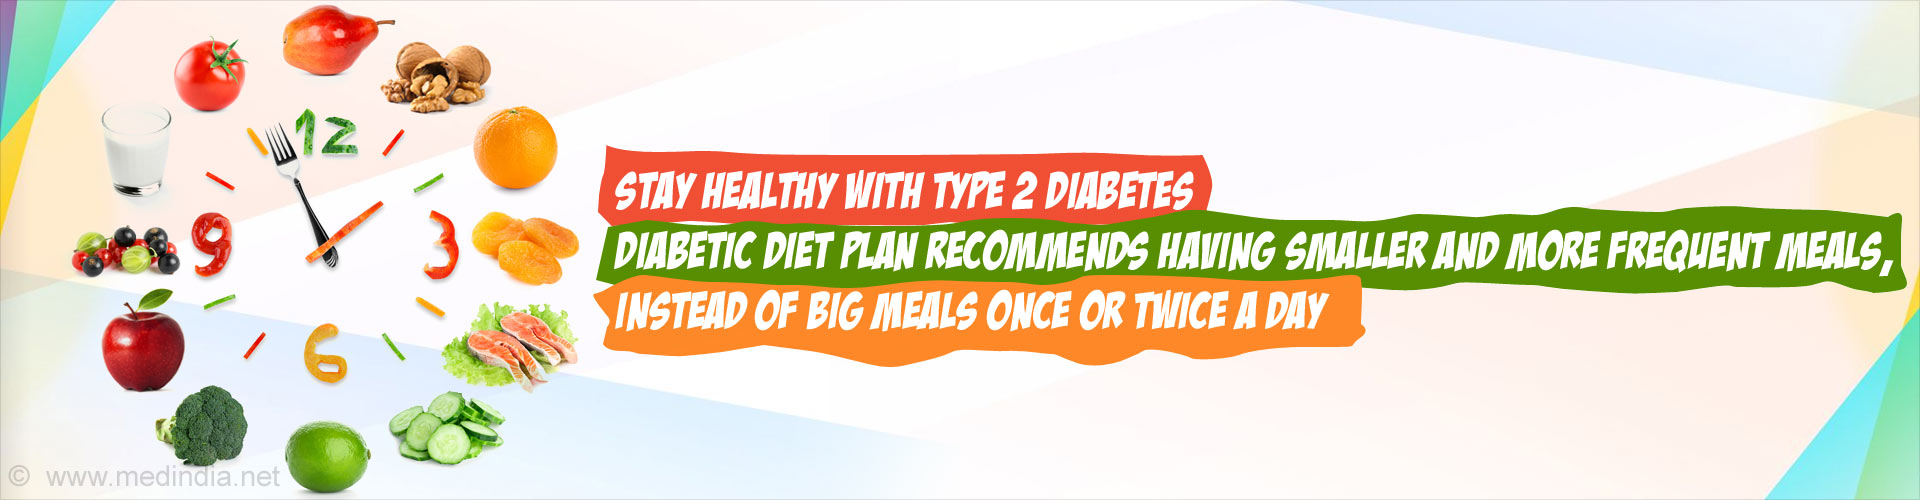 Diabetic Diet - Diabetes Mellitus